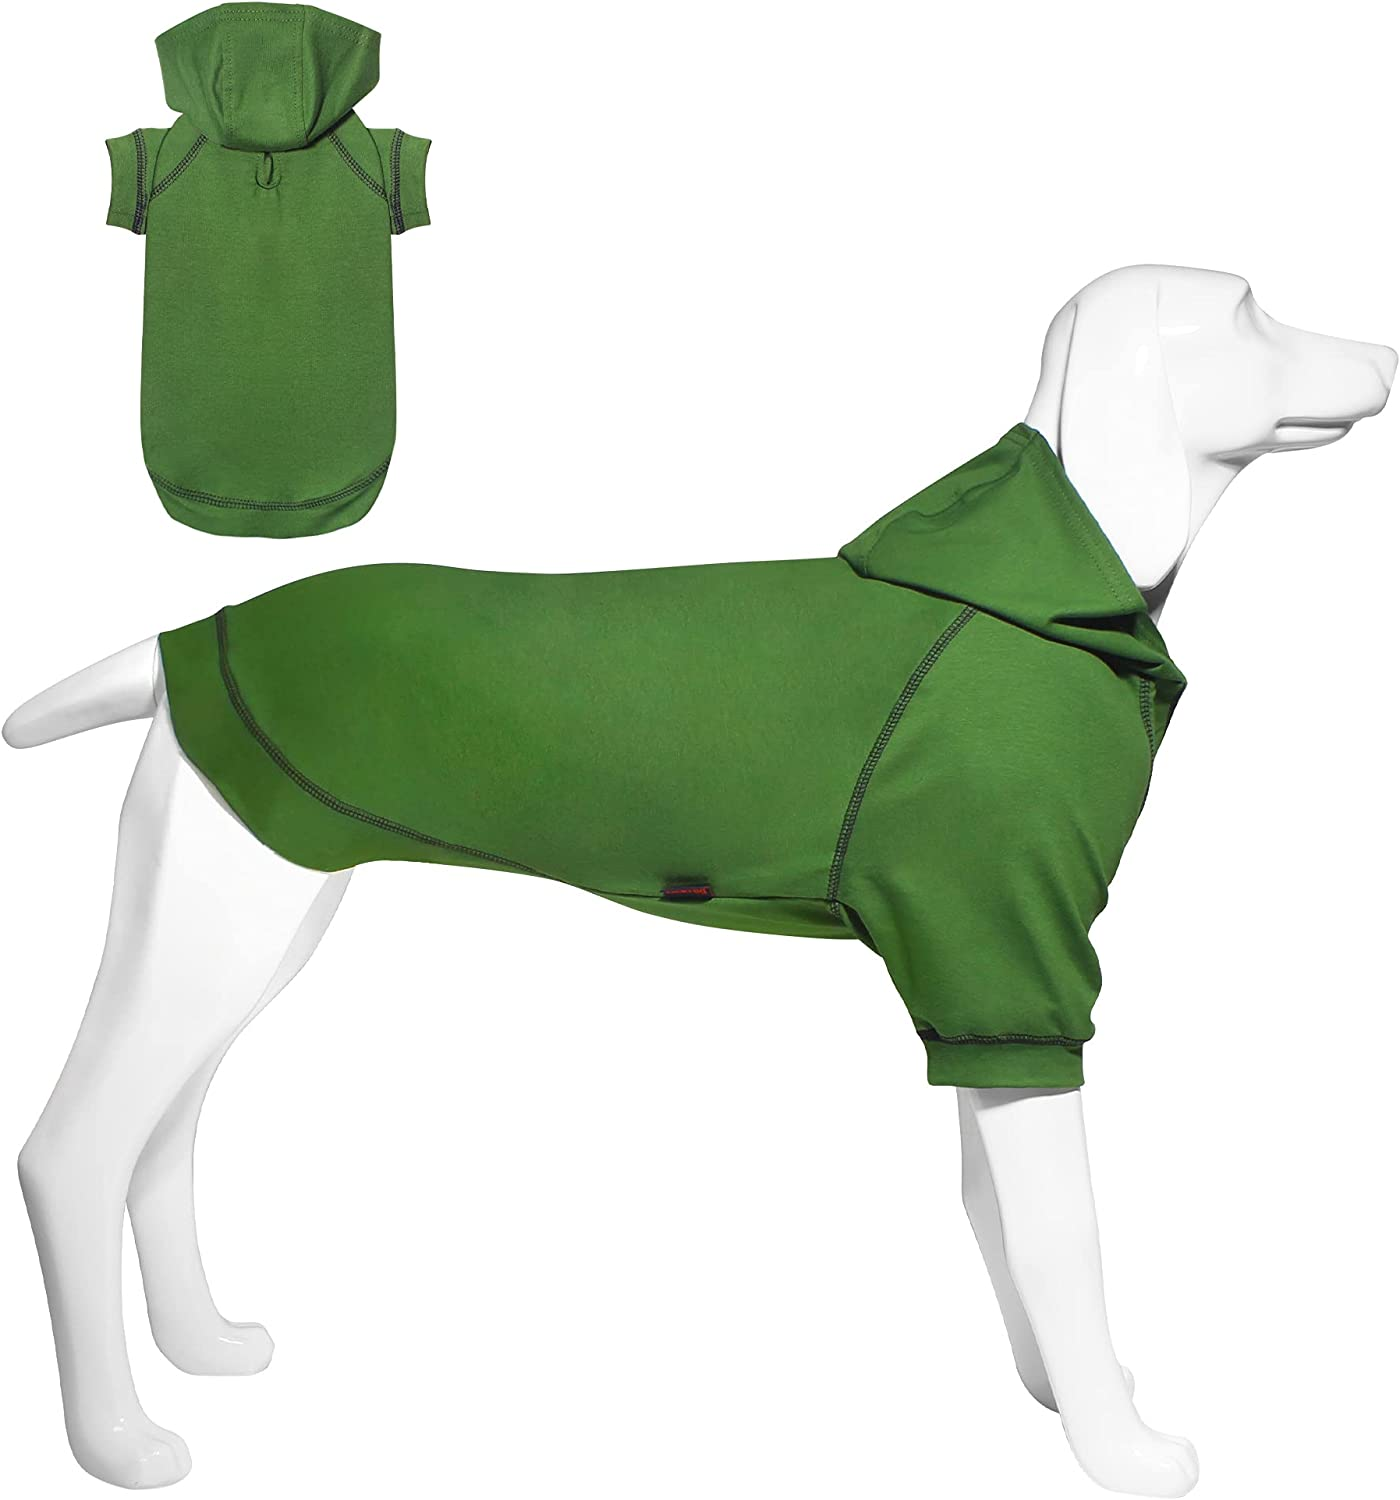 Kickred Basic Dog Hoodie Sweatshirts, Pet Clothes Hoodies Sweater with Hat and Leash Hole, Soft Cotton Outfit Coat for Small Medium Large Dogs